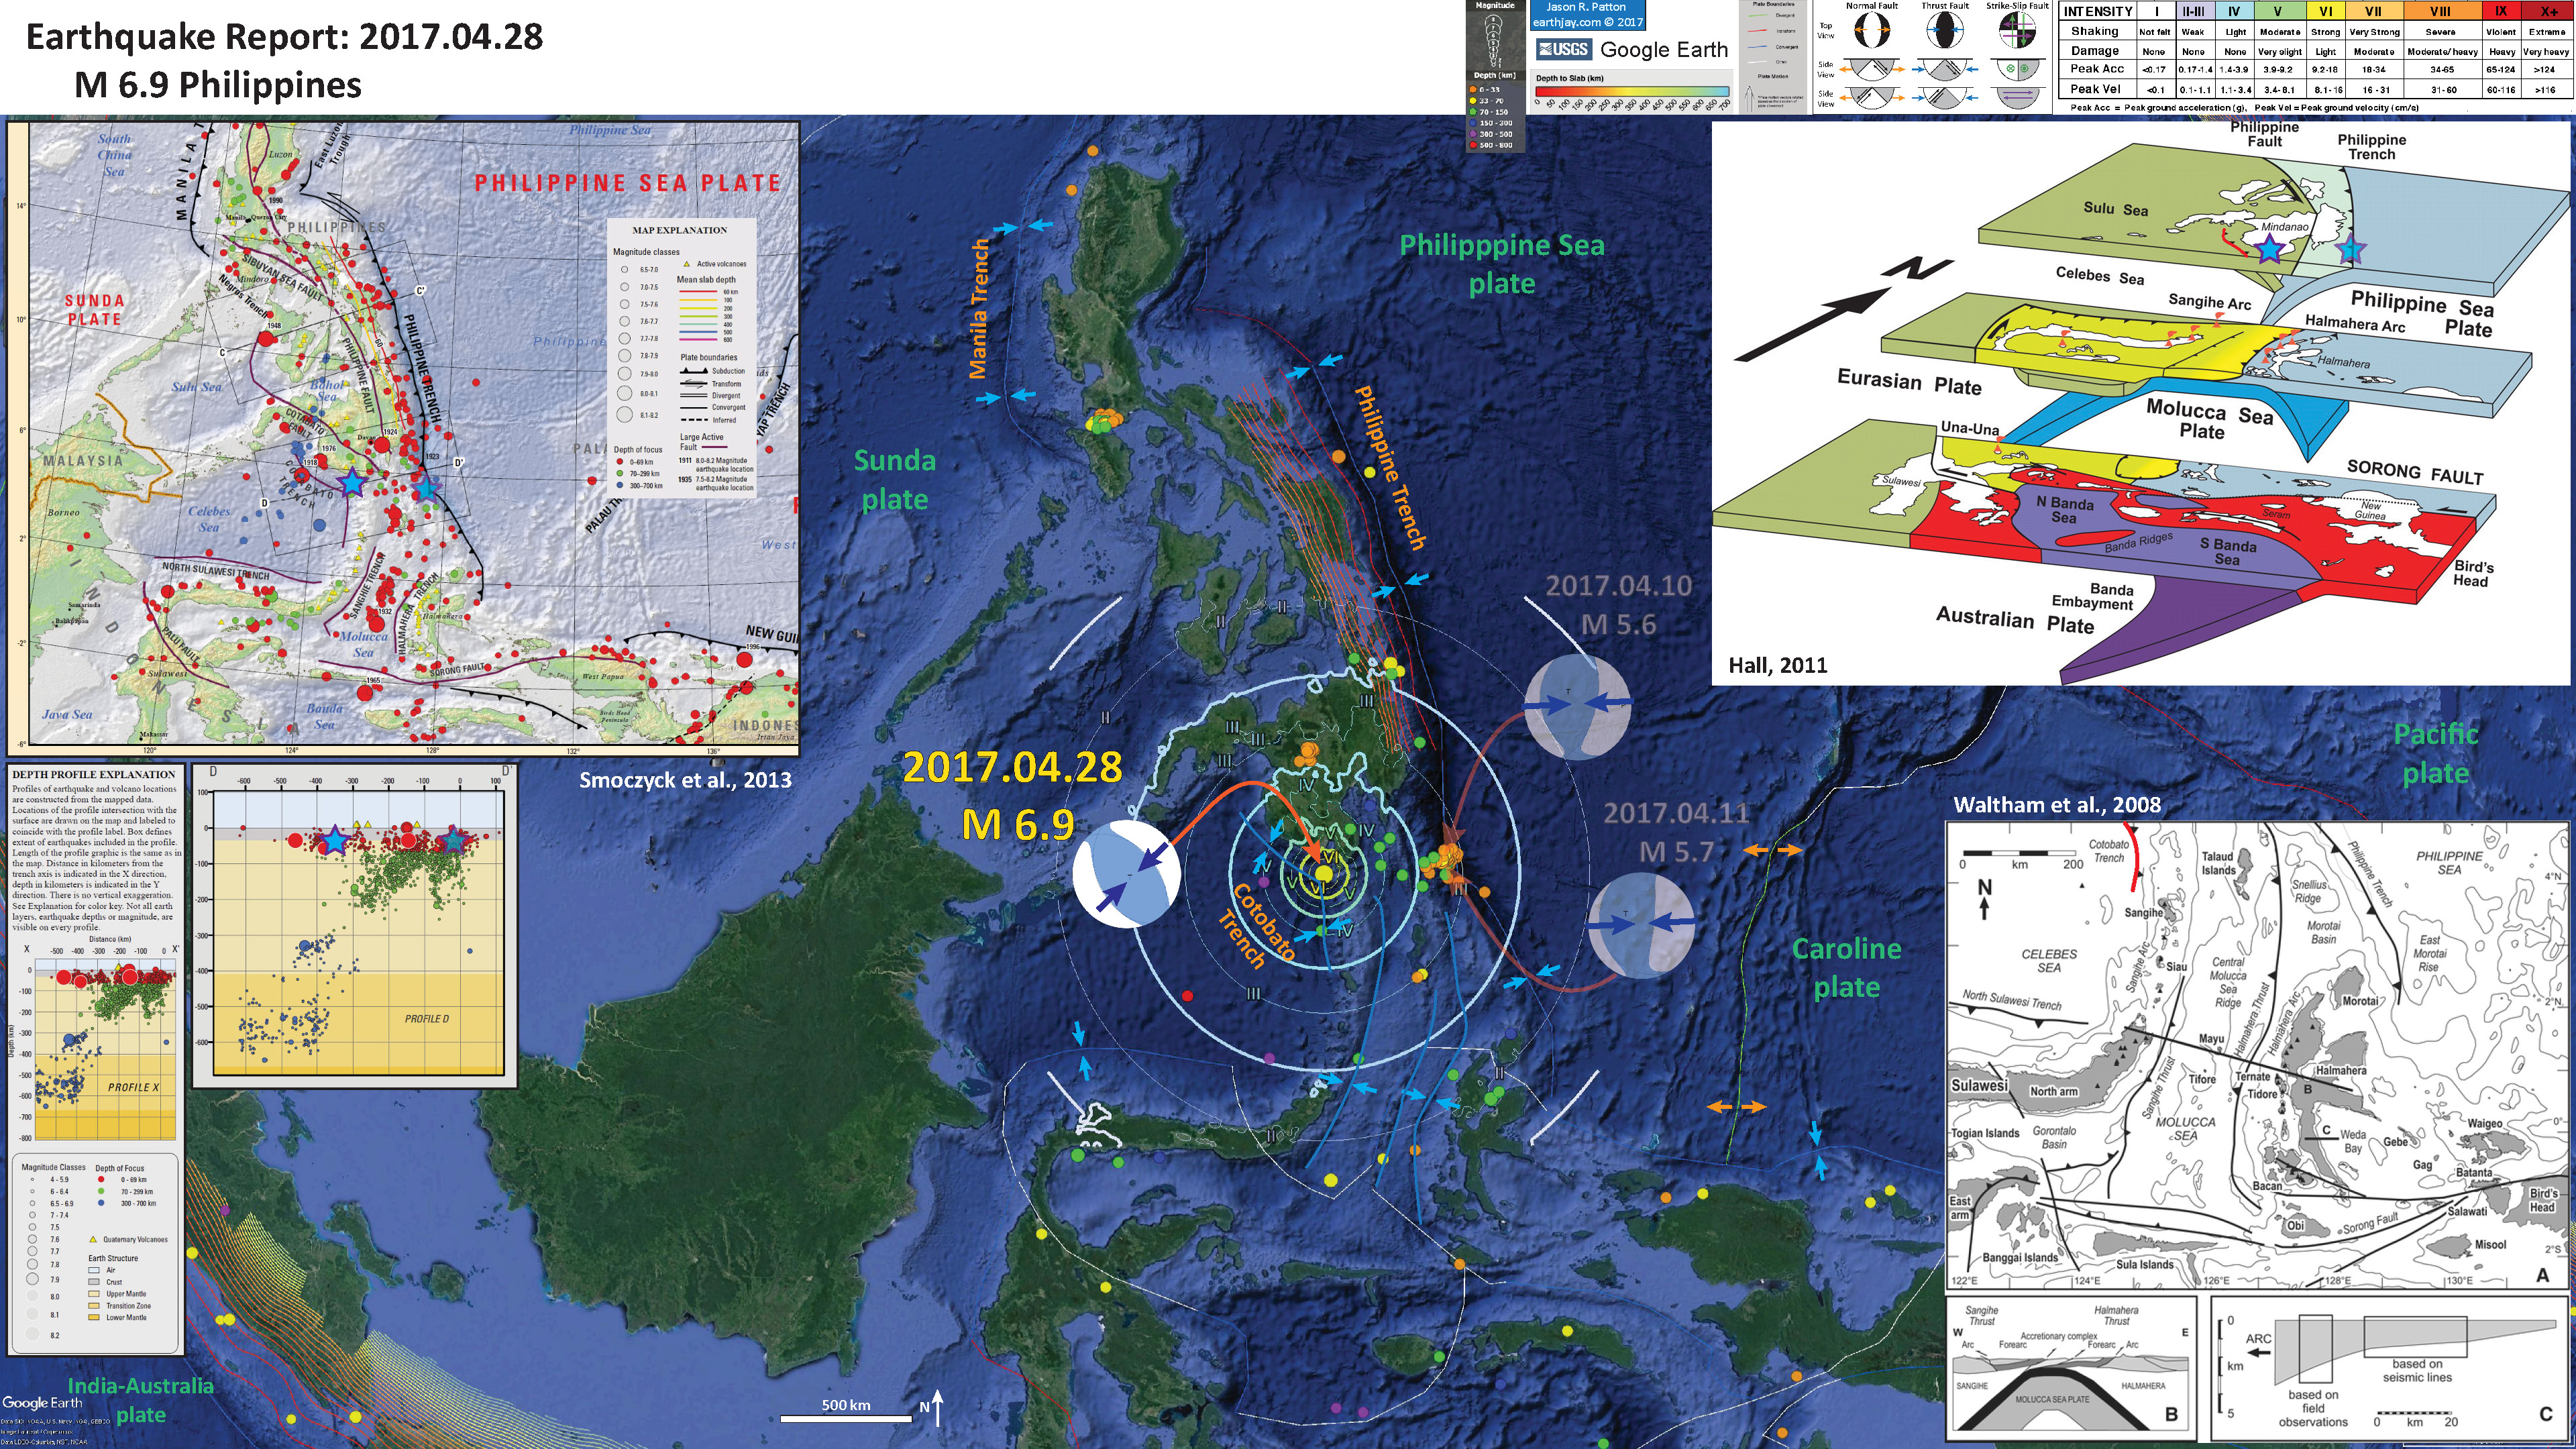 how to write a myth about earthquakes in the philippines